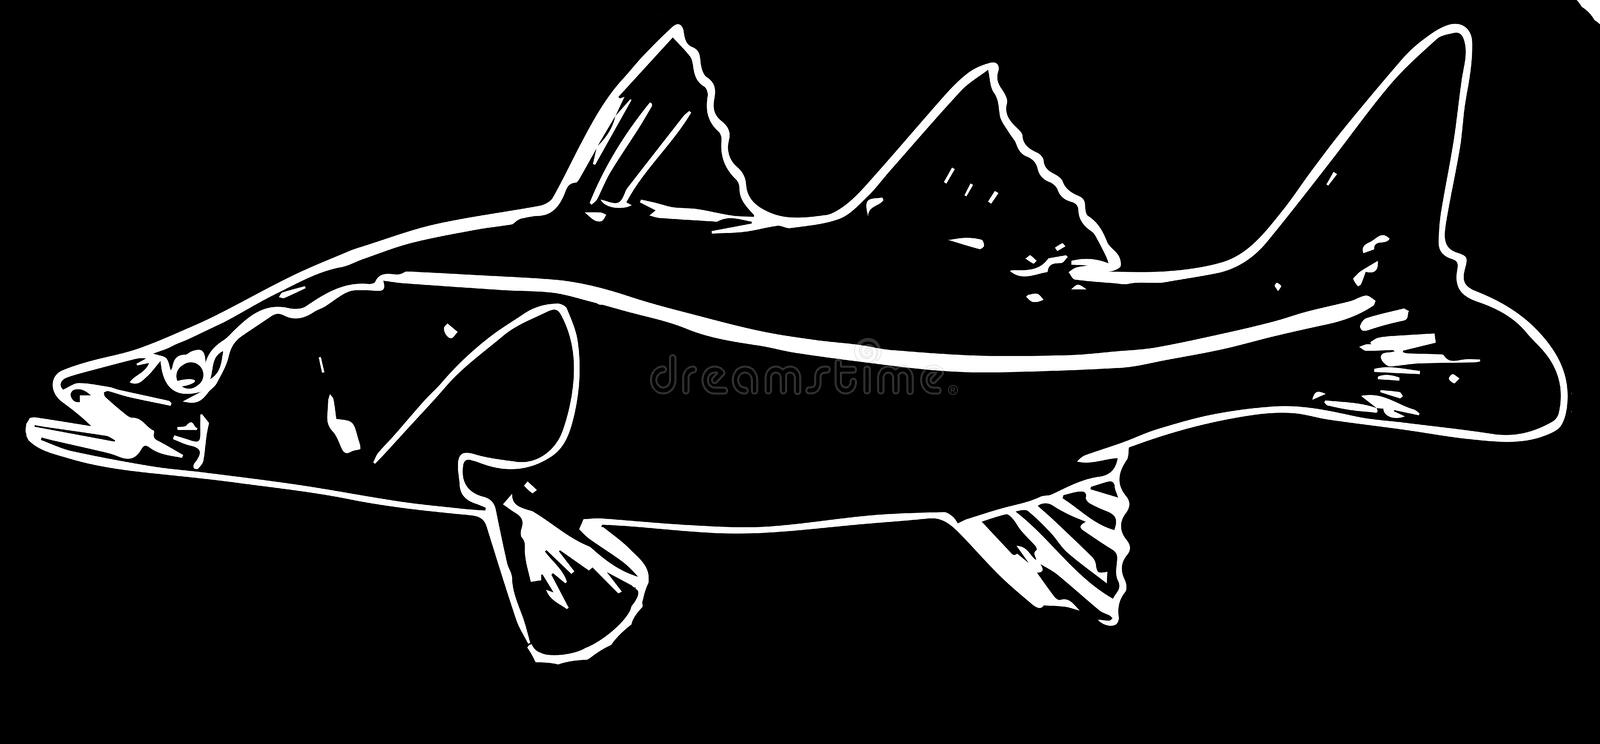 Snook saltwater fishing on black background. Snook are prized as game fish, being known for their great fighting abilities stock illustration